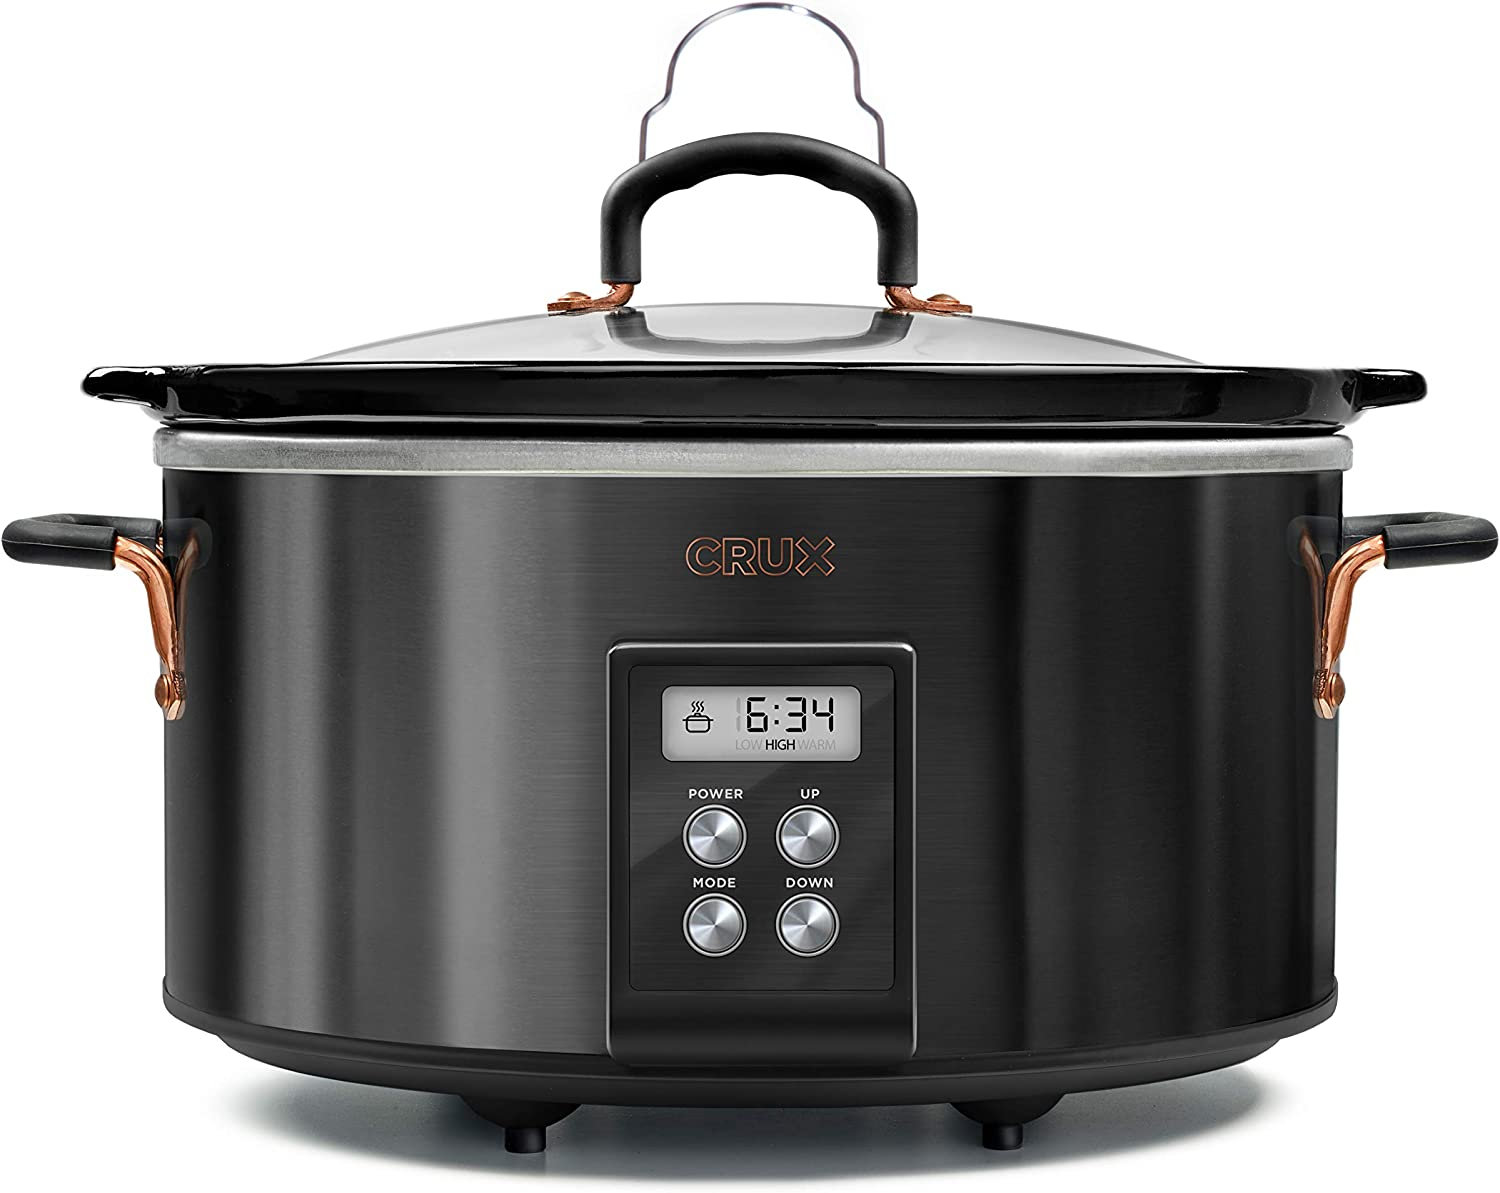 CRUX (14681) 6 QT Programmable Slow Cooker